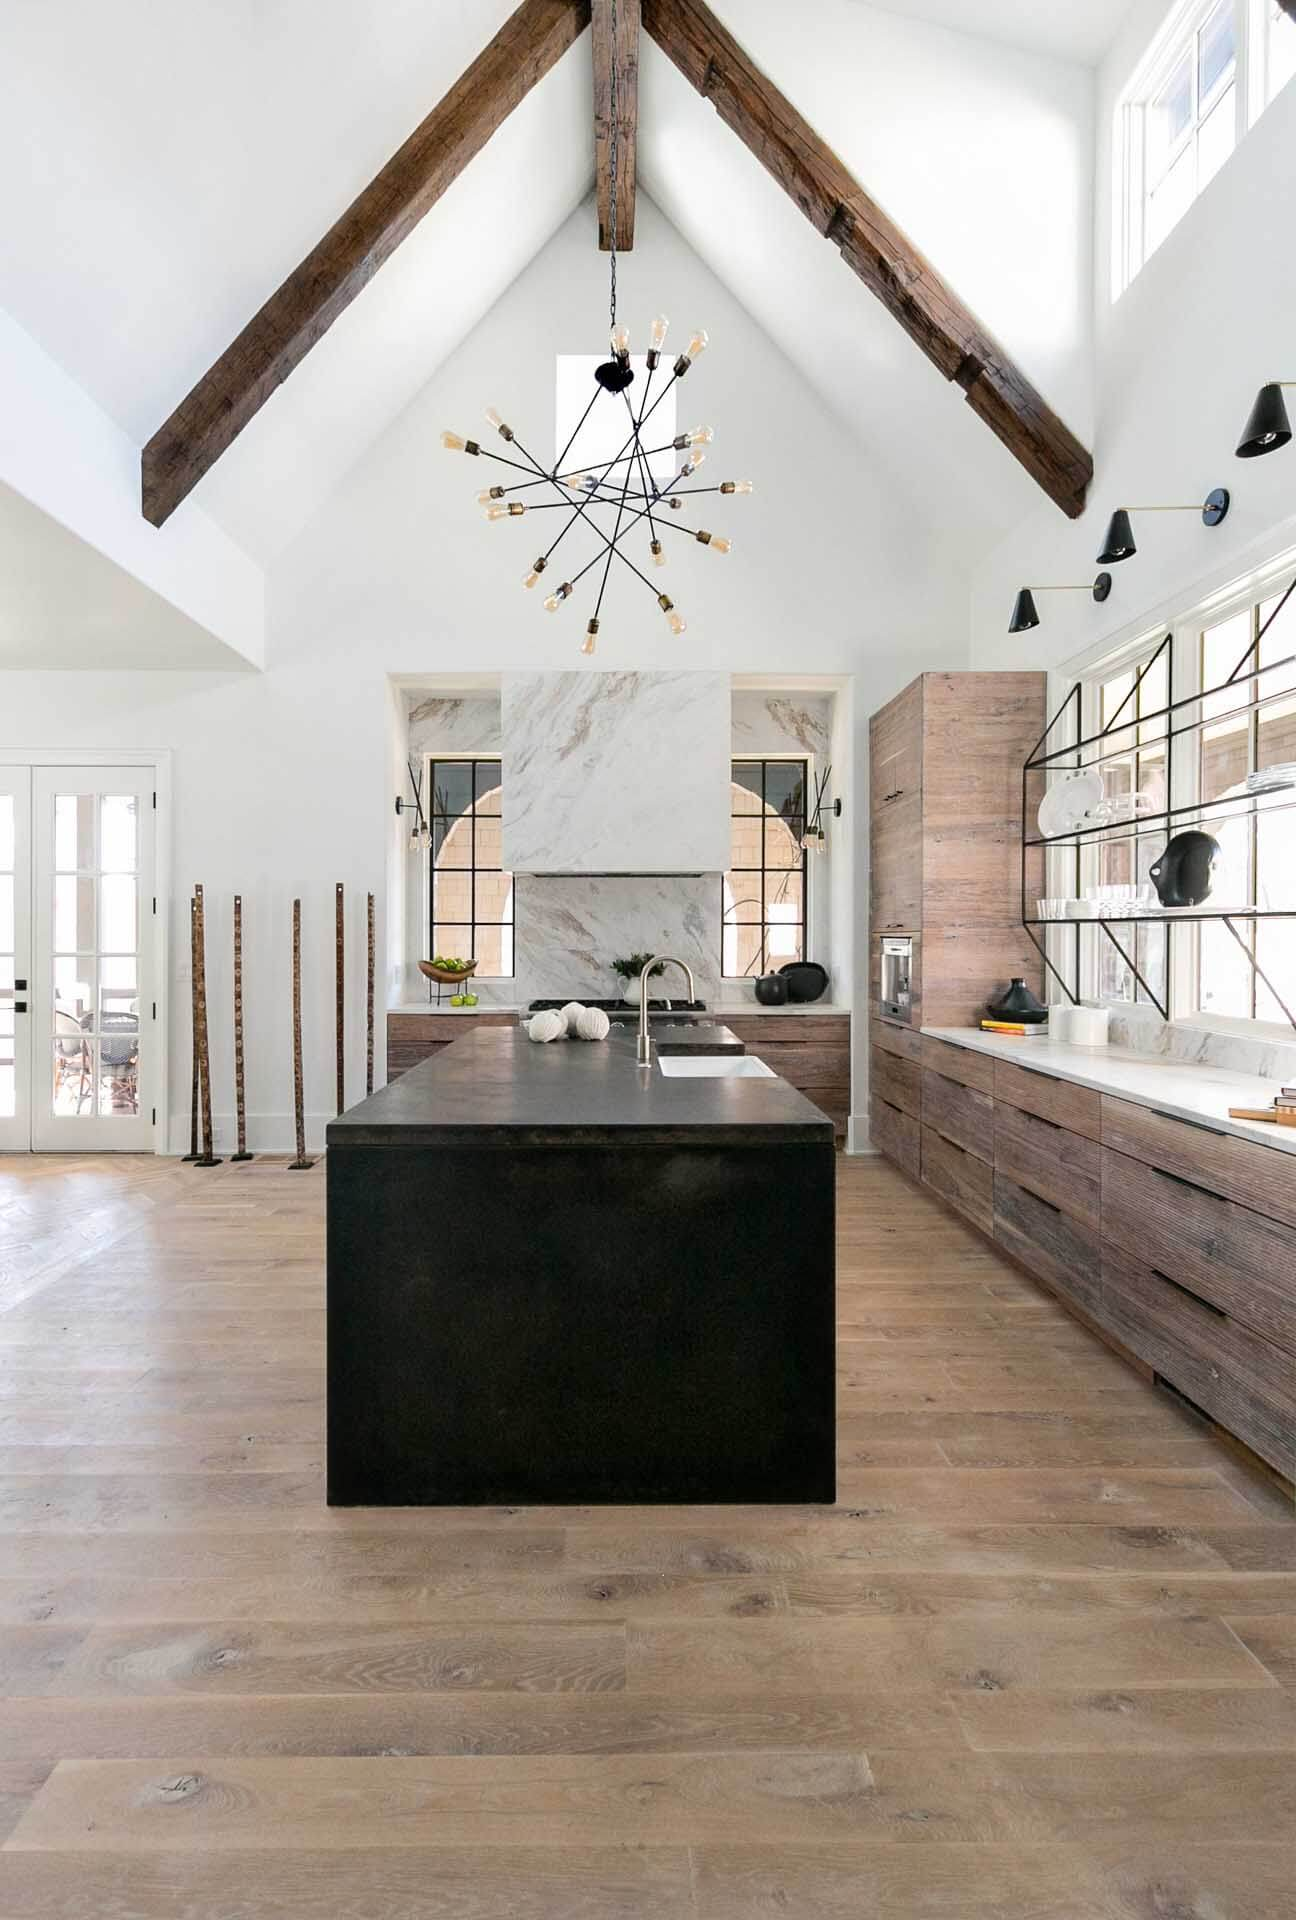 Light colored hardwood flooring and decor in a kitchen with tall ceilings, wood cabinets and a kitchen island.